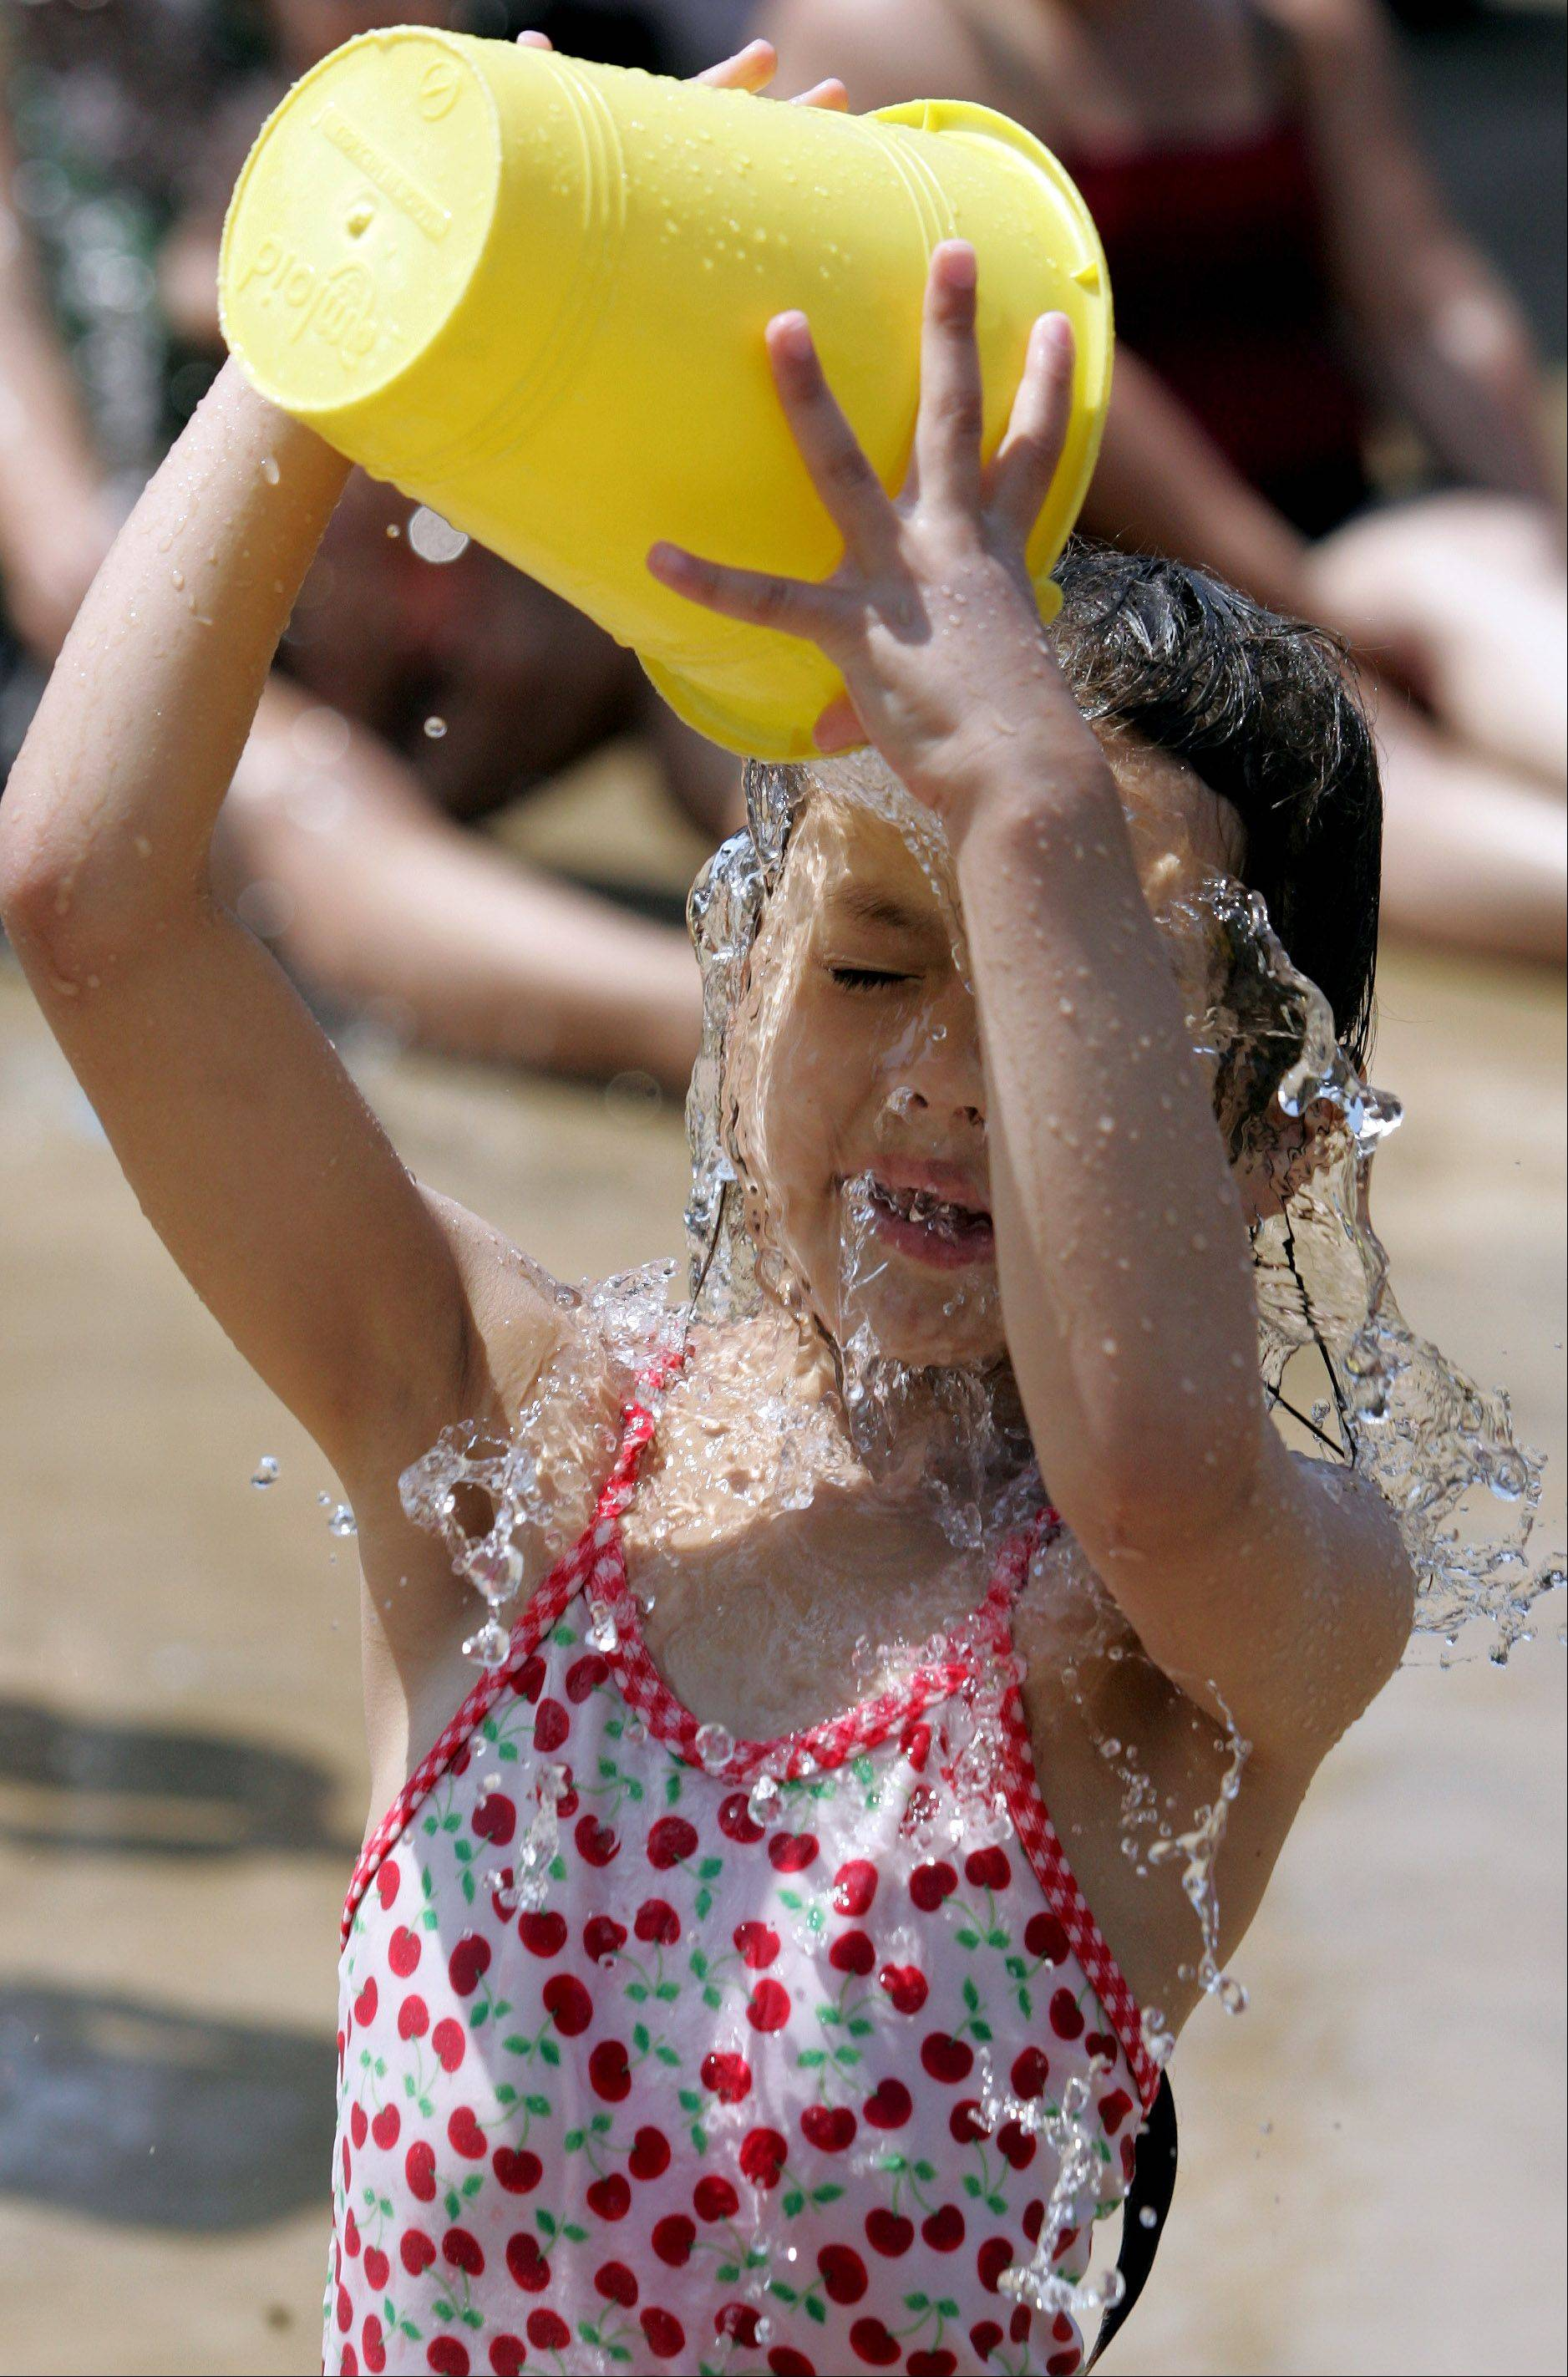 Jennifer Valois, 6, of Villa Park, pours a bucket of water over herself as she cools off with her family at the Water Spray Park in Lombard on Tuesday.